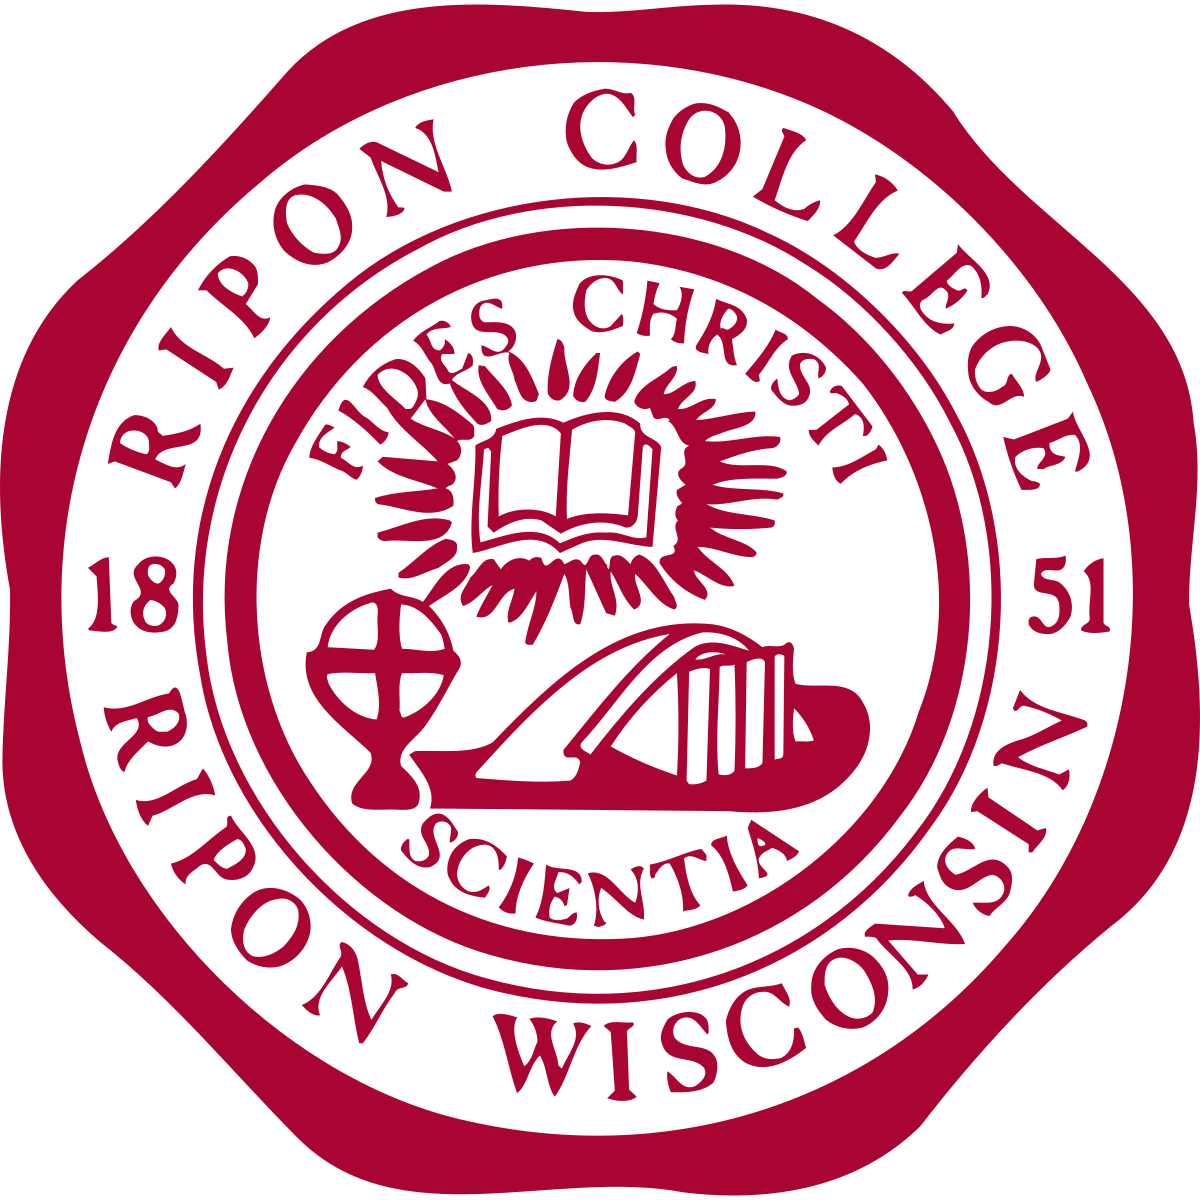 Ripon College (Wisconsin).